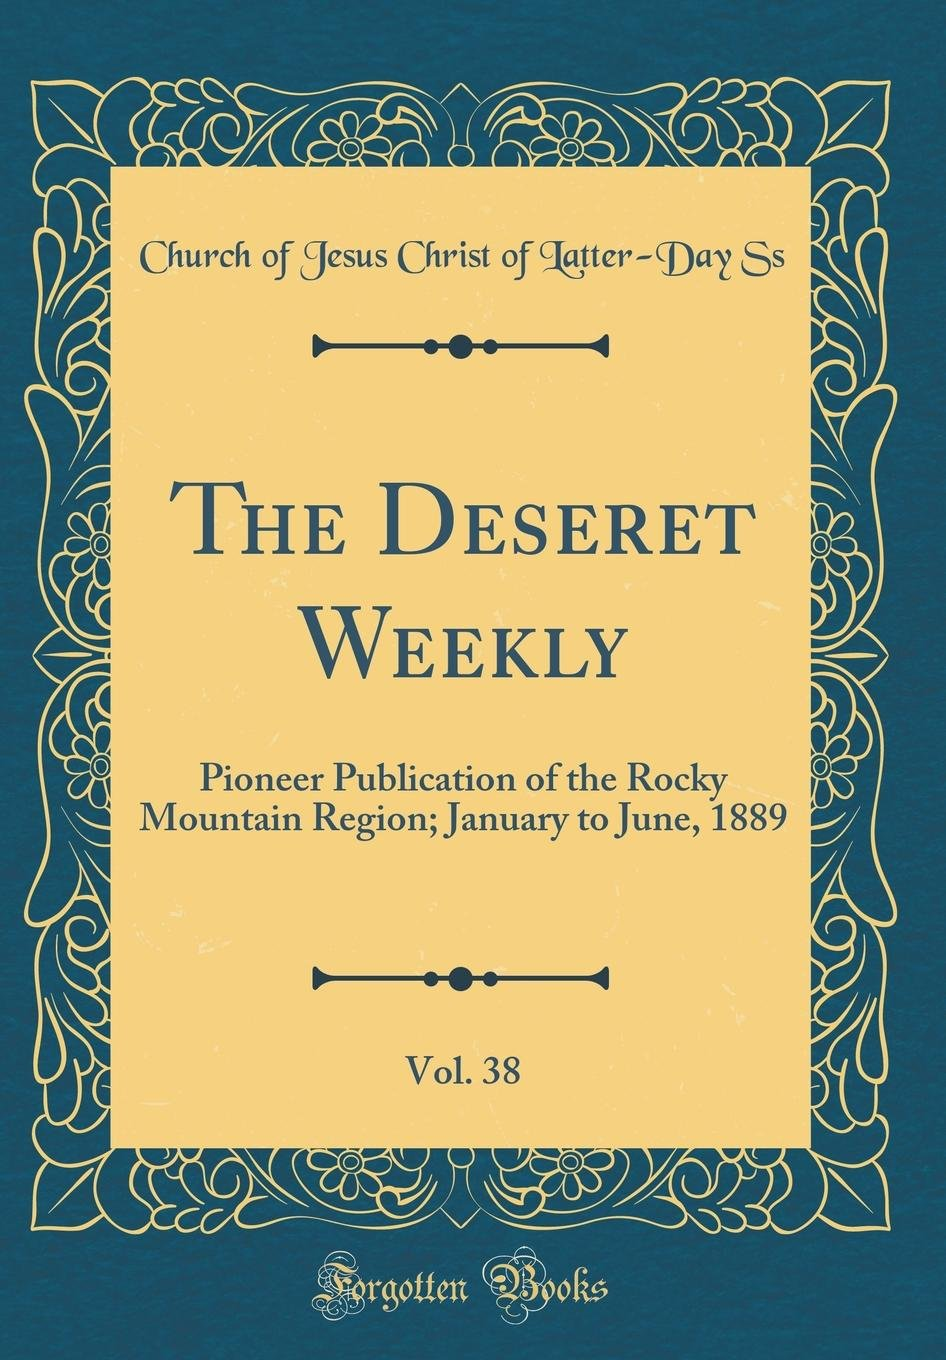 The Deseret Weekly, Vol. 38: Pioneer Publication of the Rocky Mountain Region; January to June, 1889 (Classic Reprint) pdf epub